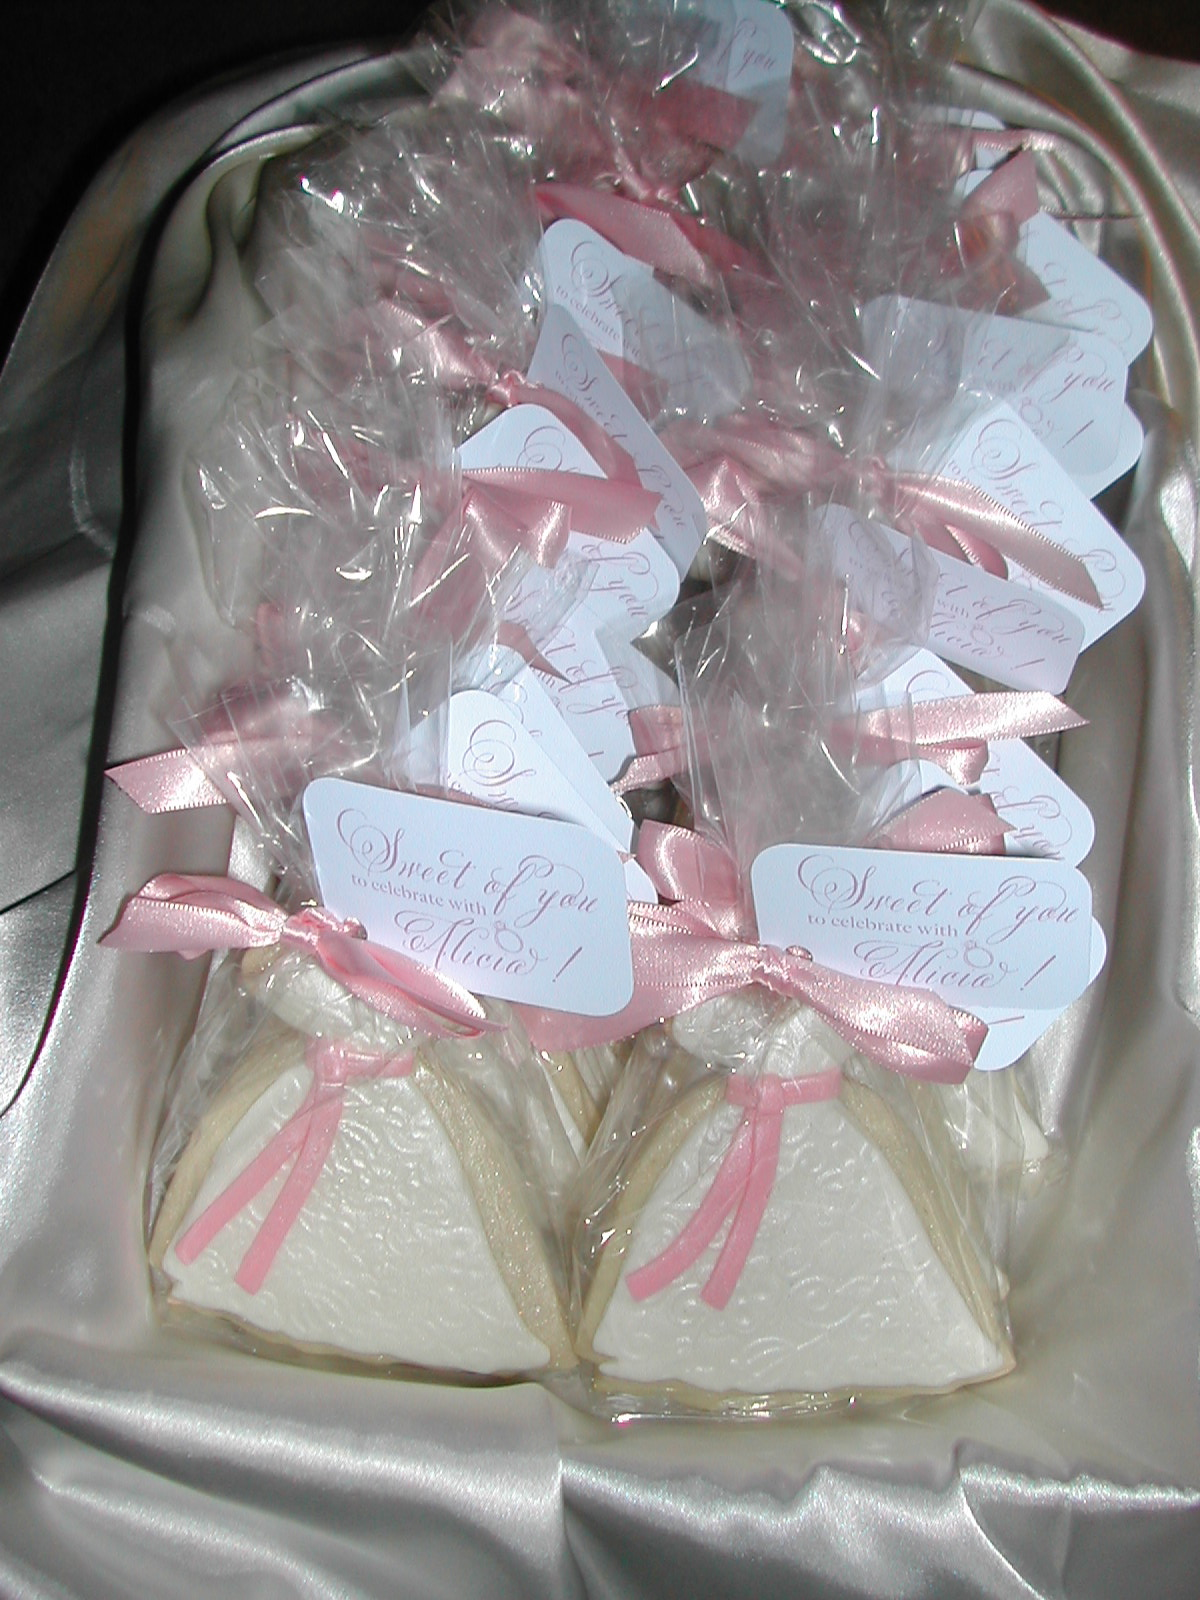 bridal shower favor, bride39;s dress cookie, decorated wedding cookie